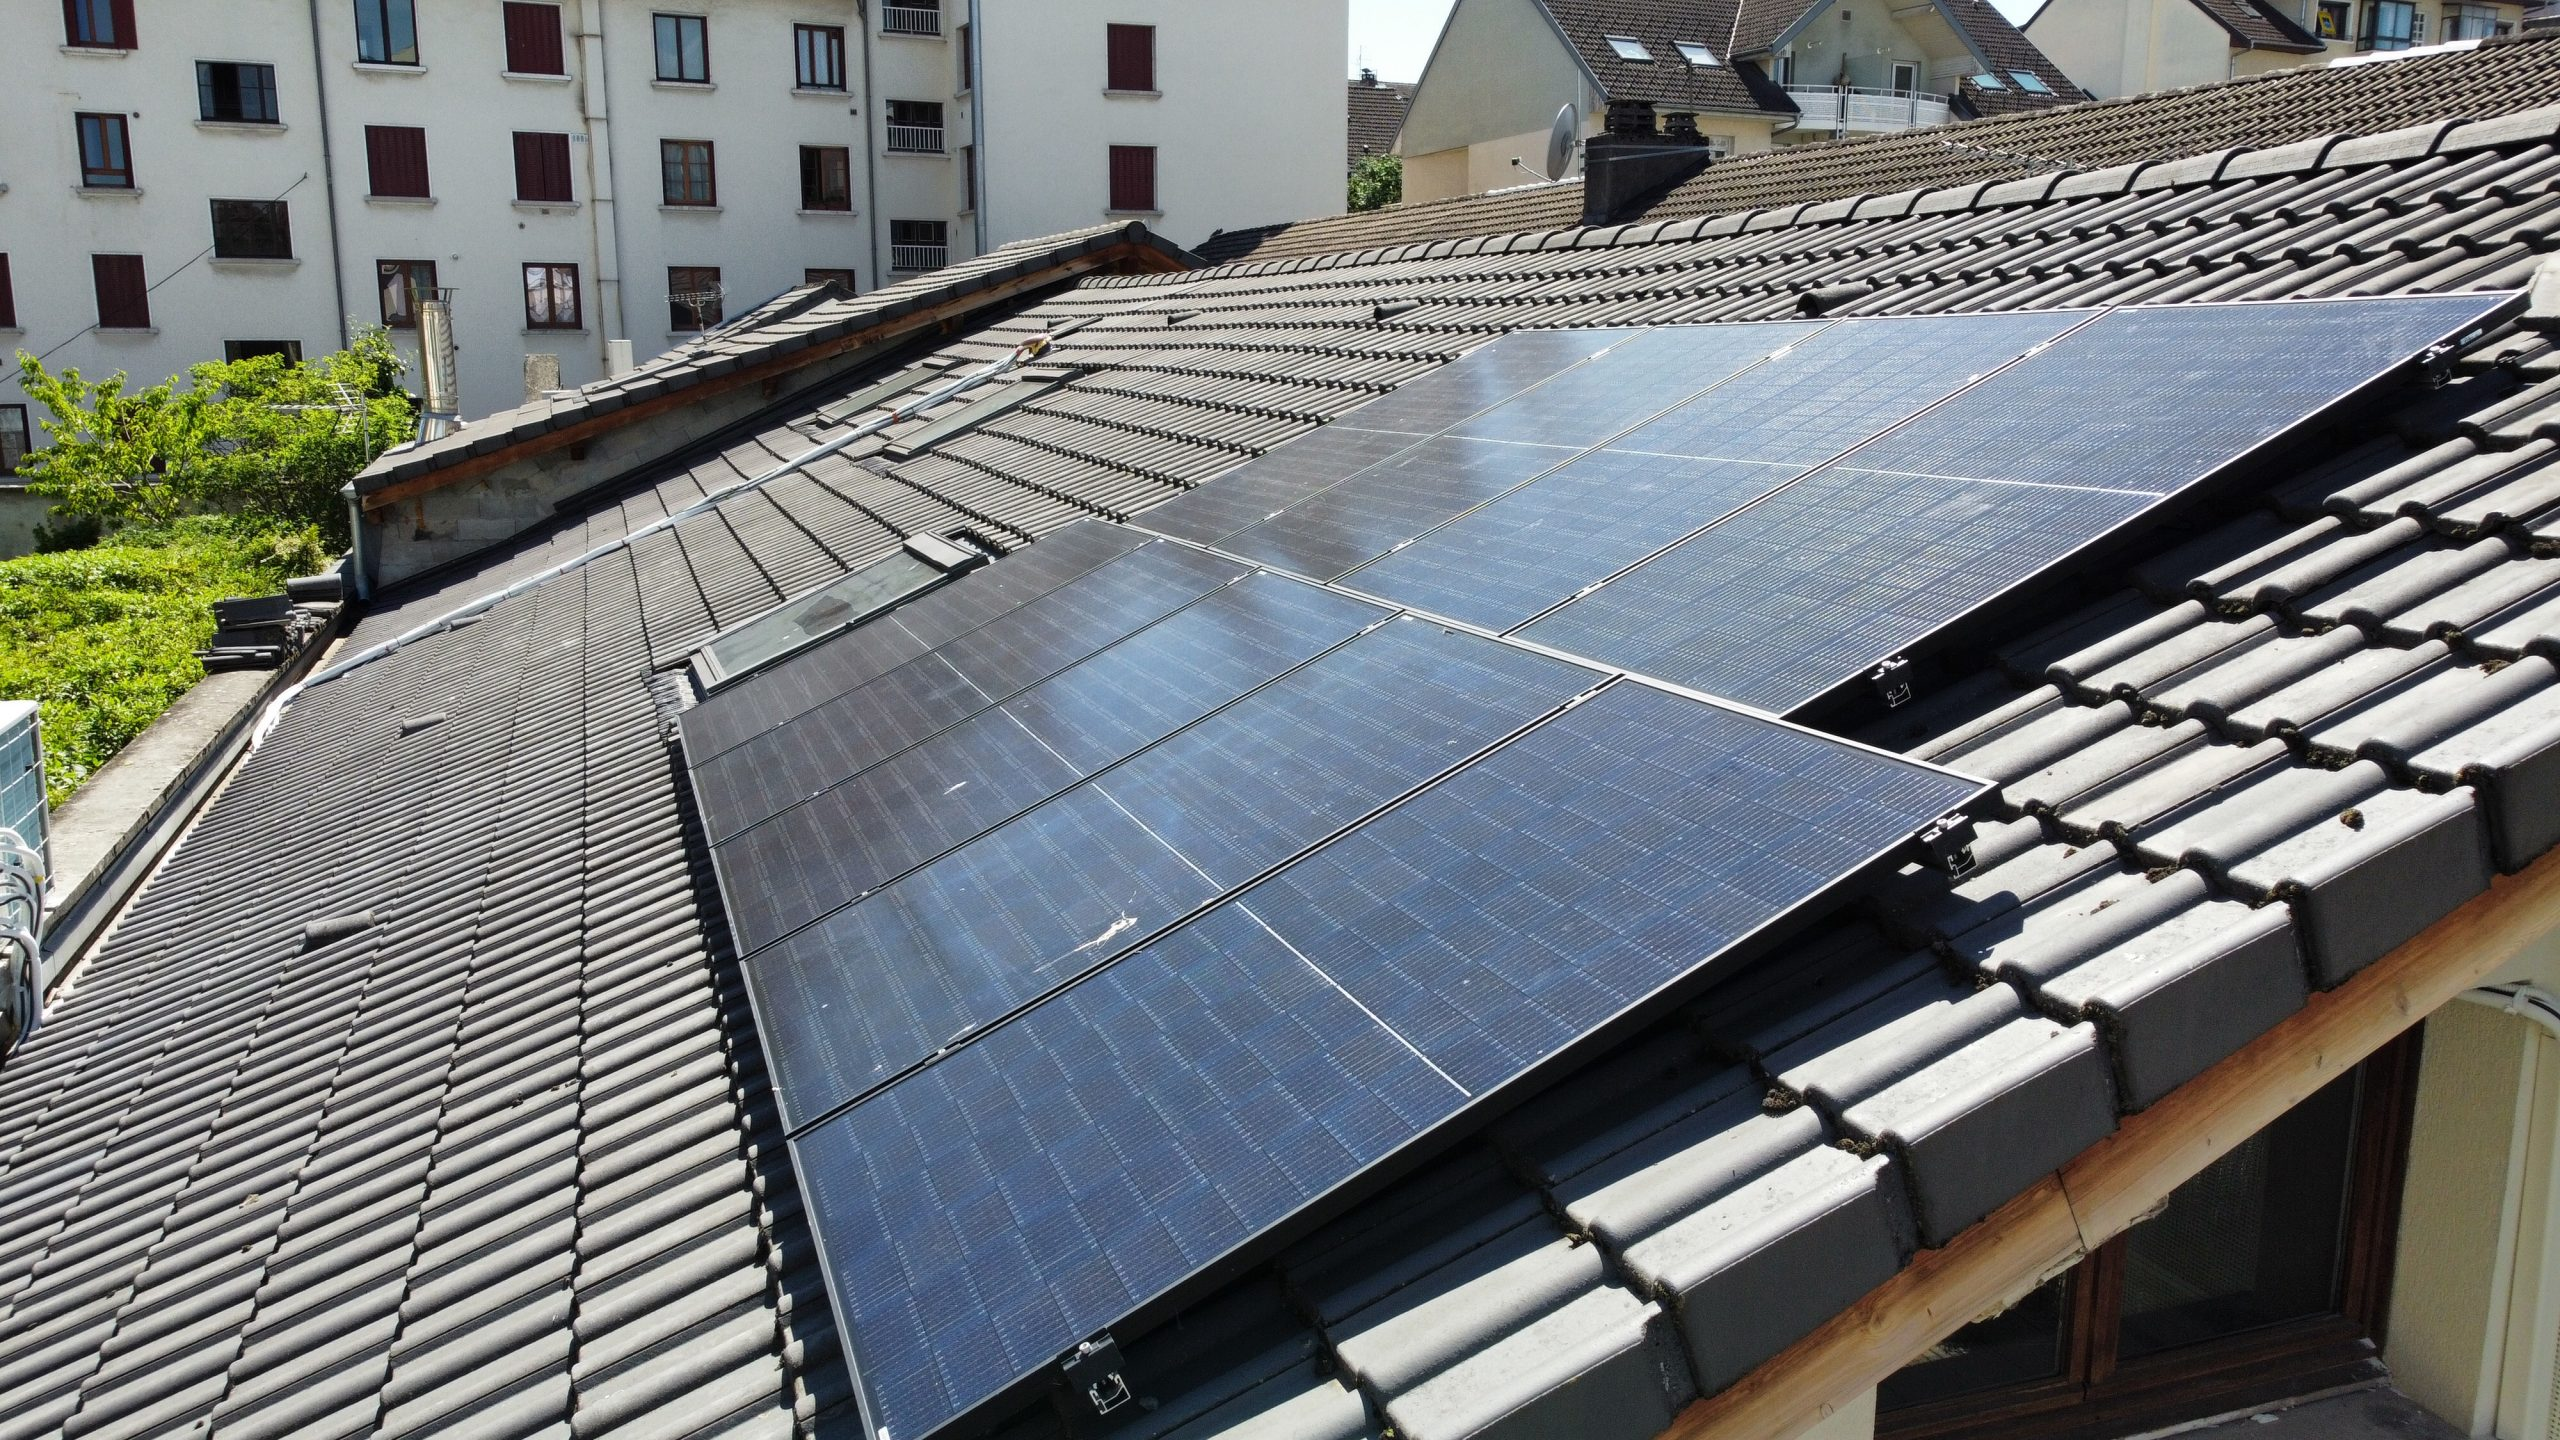 energies services france installation solaire photovoltaique annecy immeuble collectif eurener enphase autoconsommation